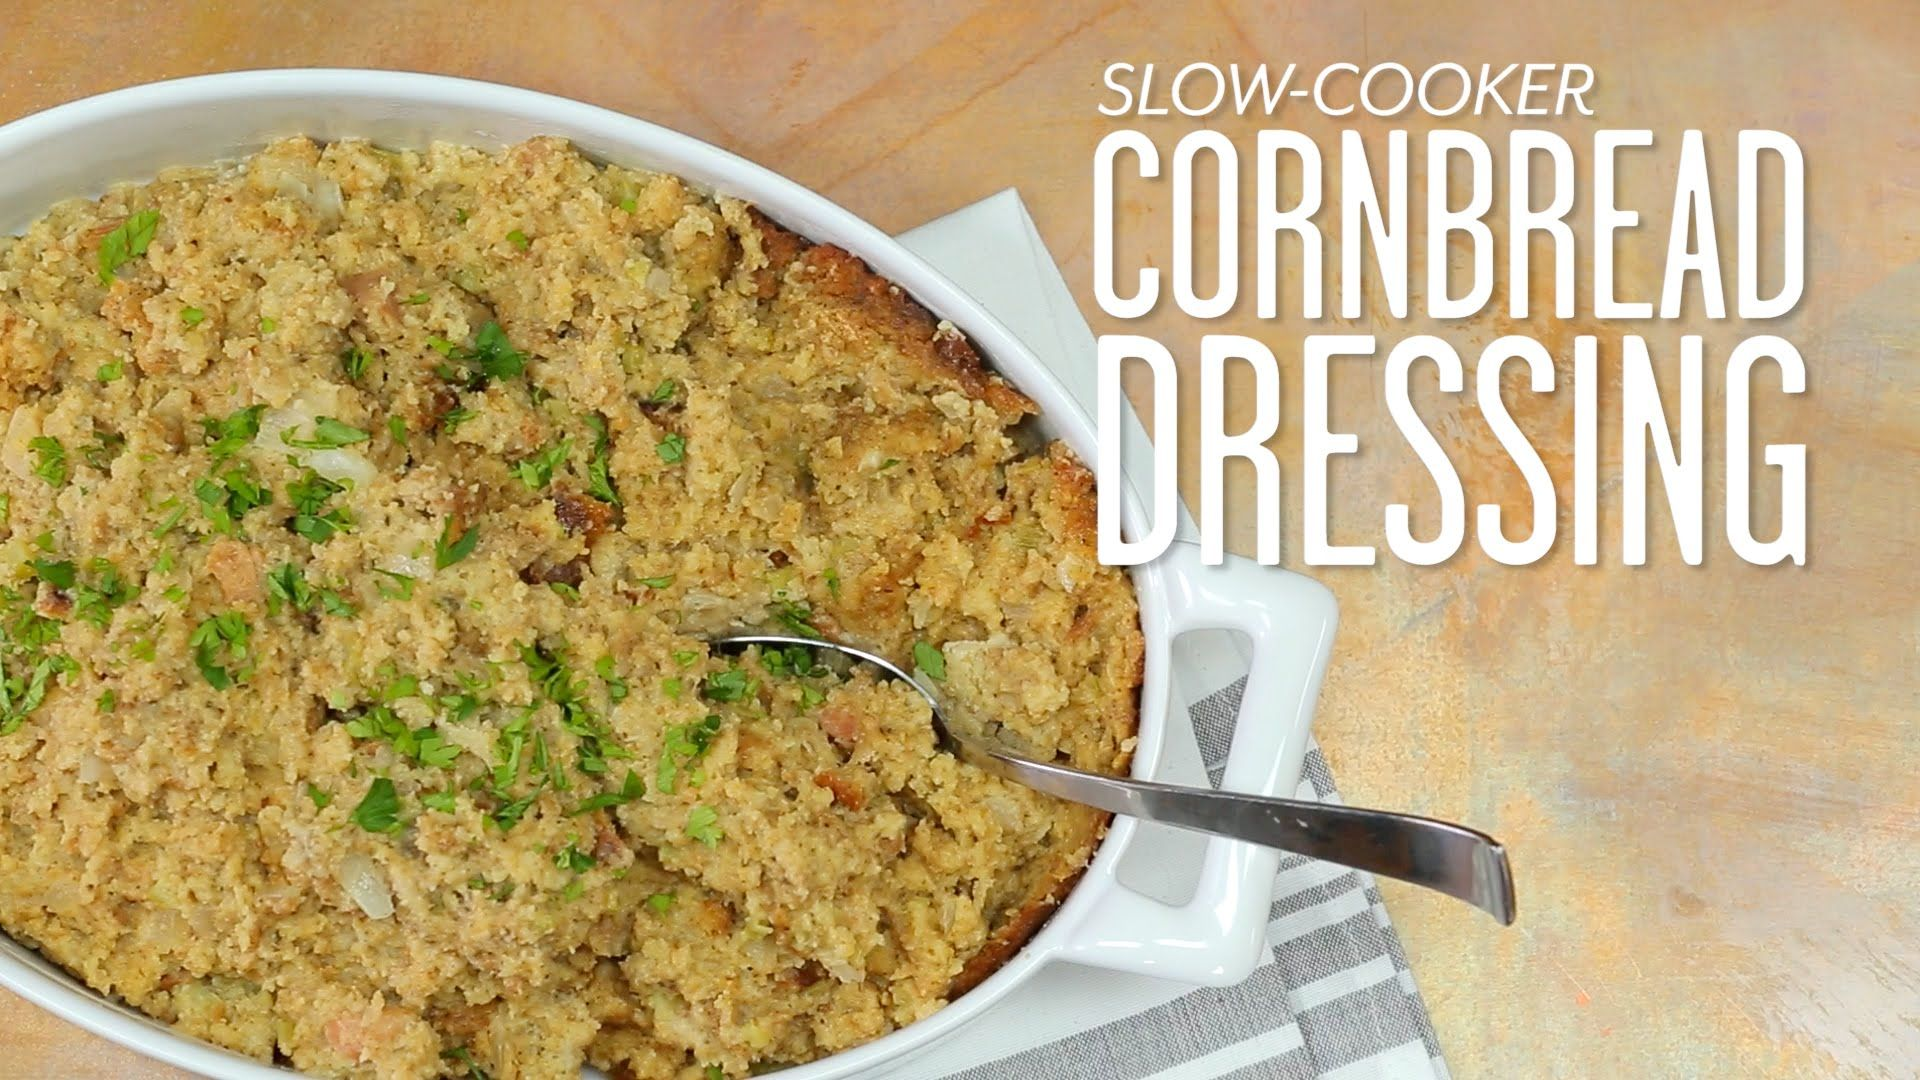 How to make slow cooker cornbread dressing southern living how to make slow cooker cornbread dressing southern living forumfinder Gallery